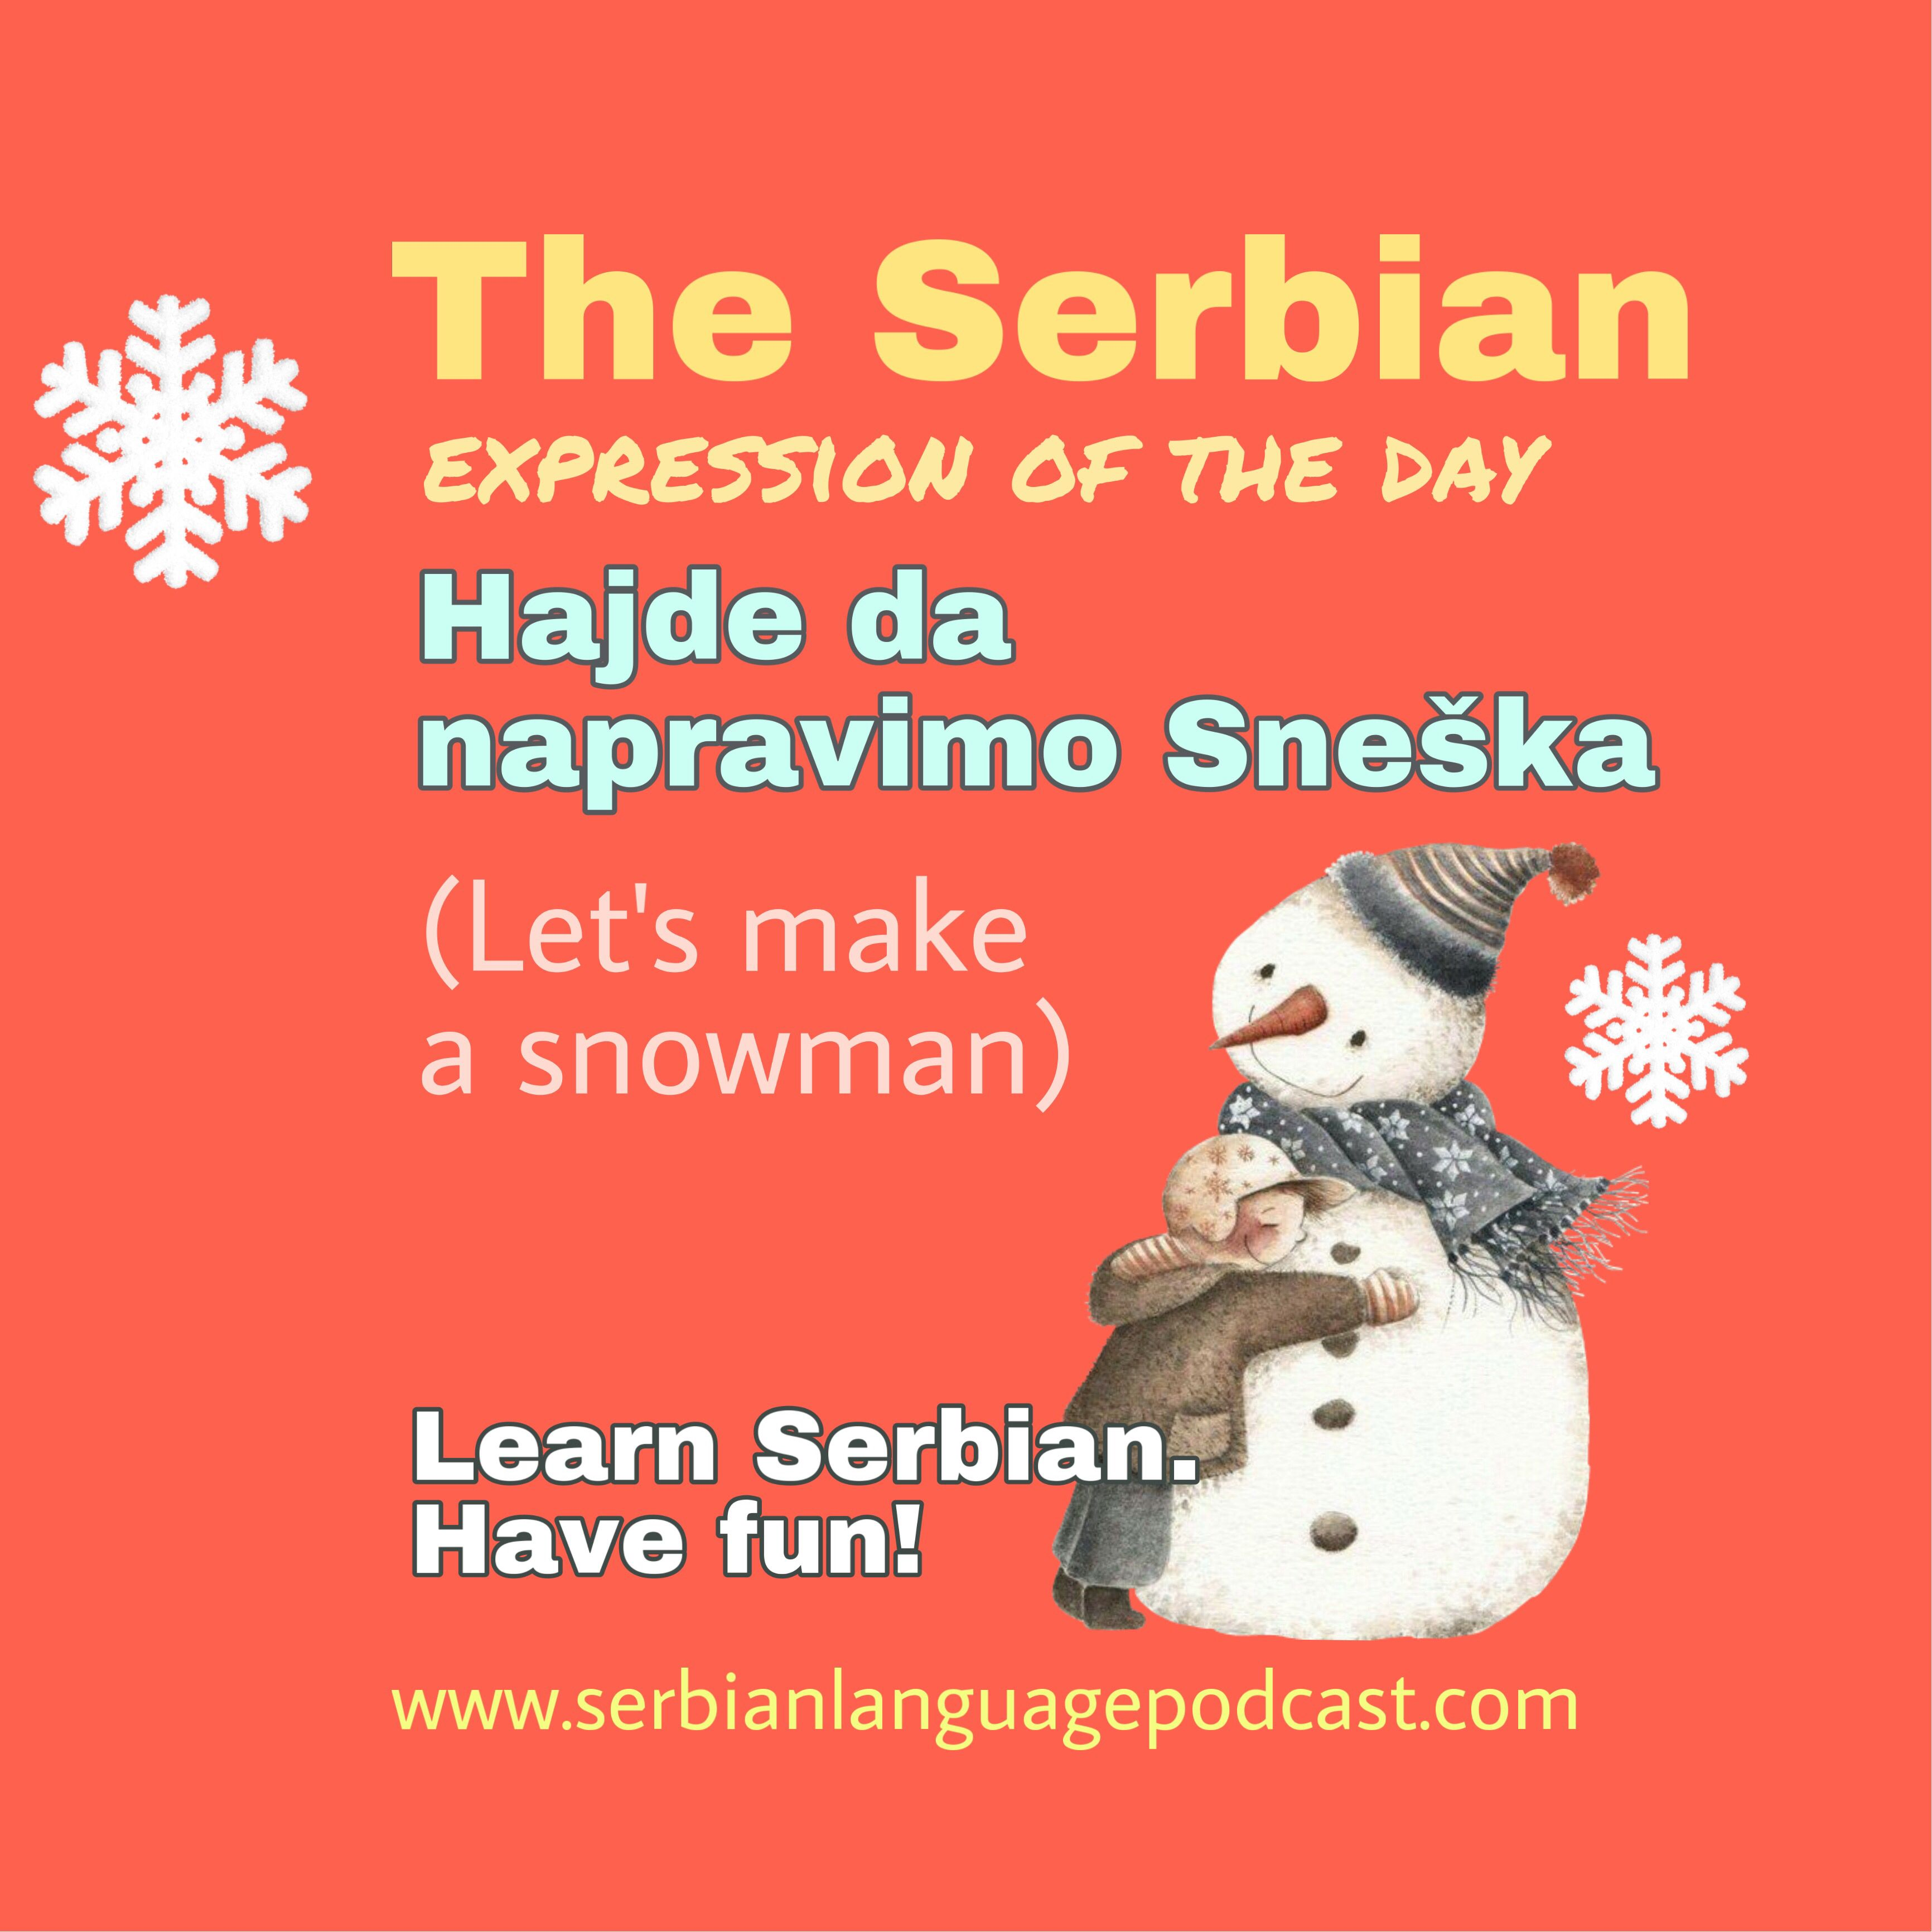 The Serbian Expression Of The Day